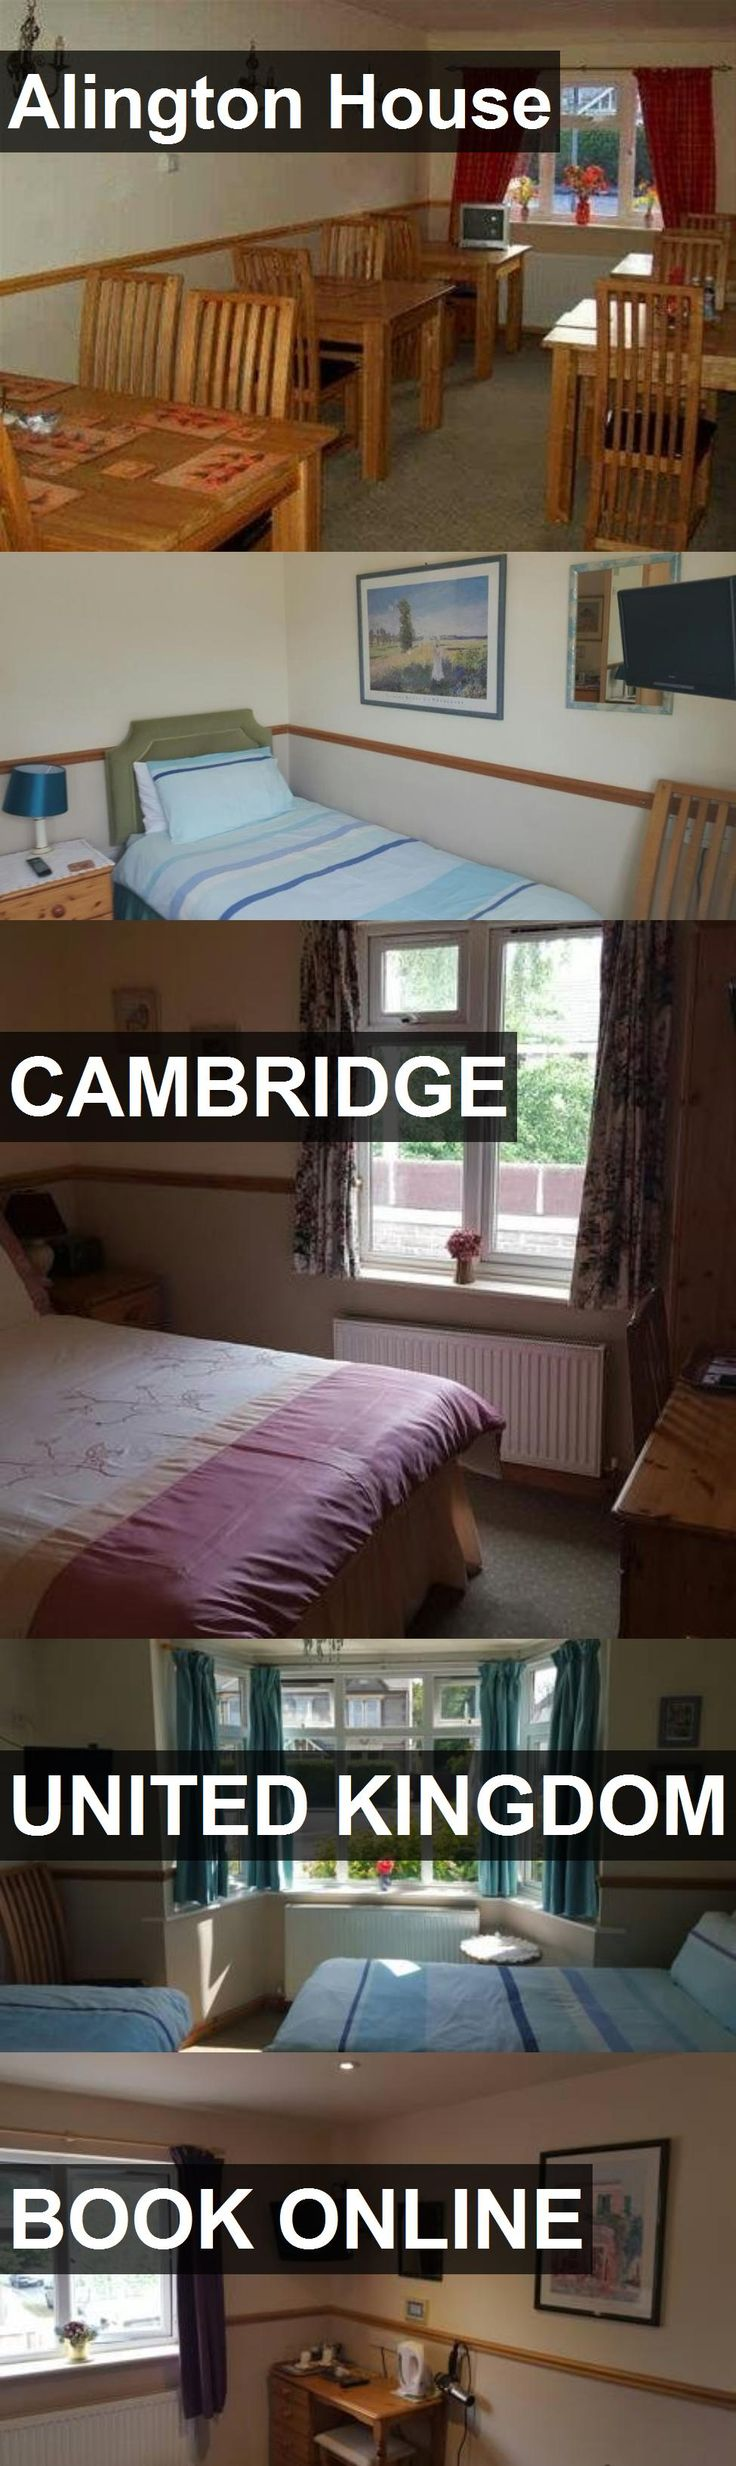 Hotel Alington House in Cambridge, United Kingdom. For more information, photos, reviews and best prices please follow the link. #UnitedKingdom #Cambridge #travel #vacation #hotel